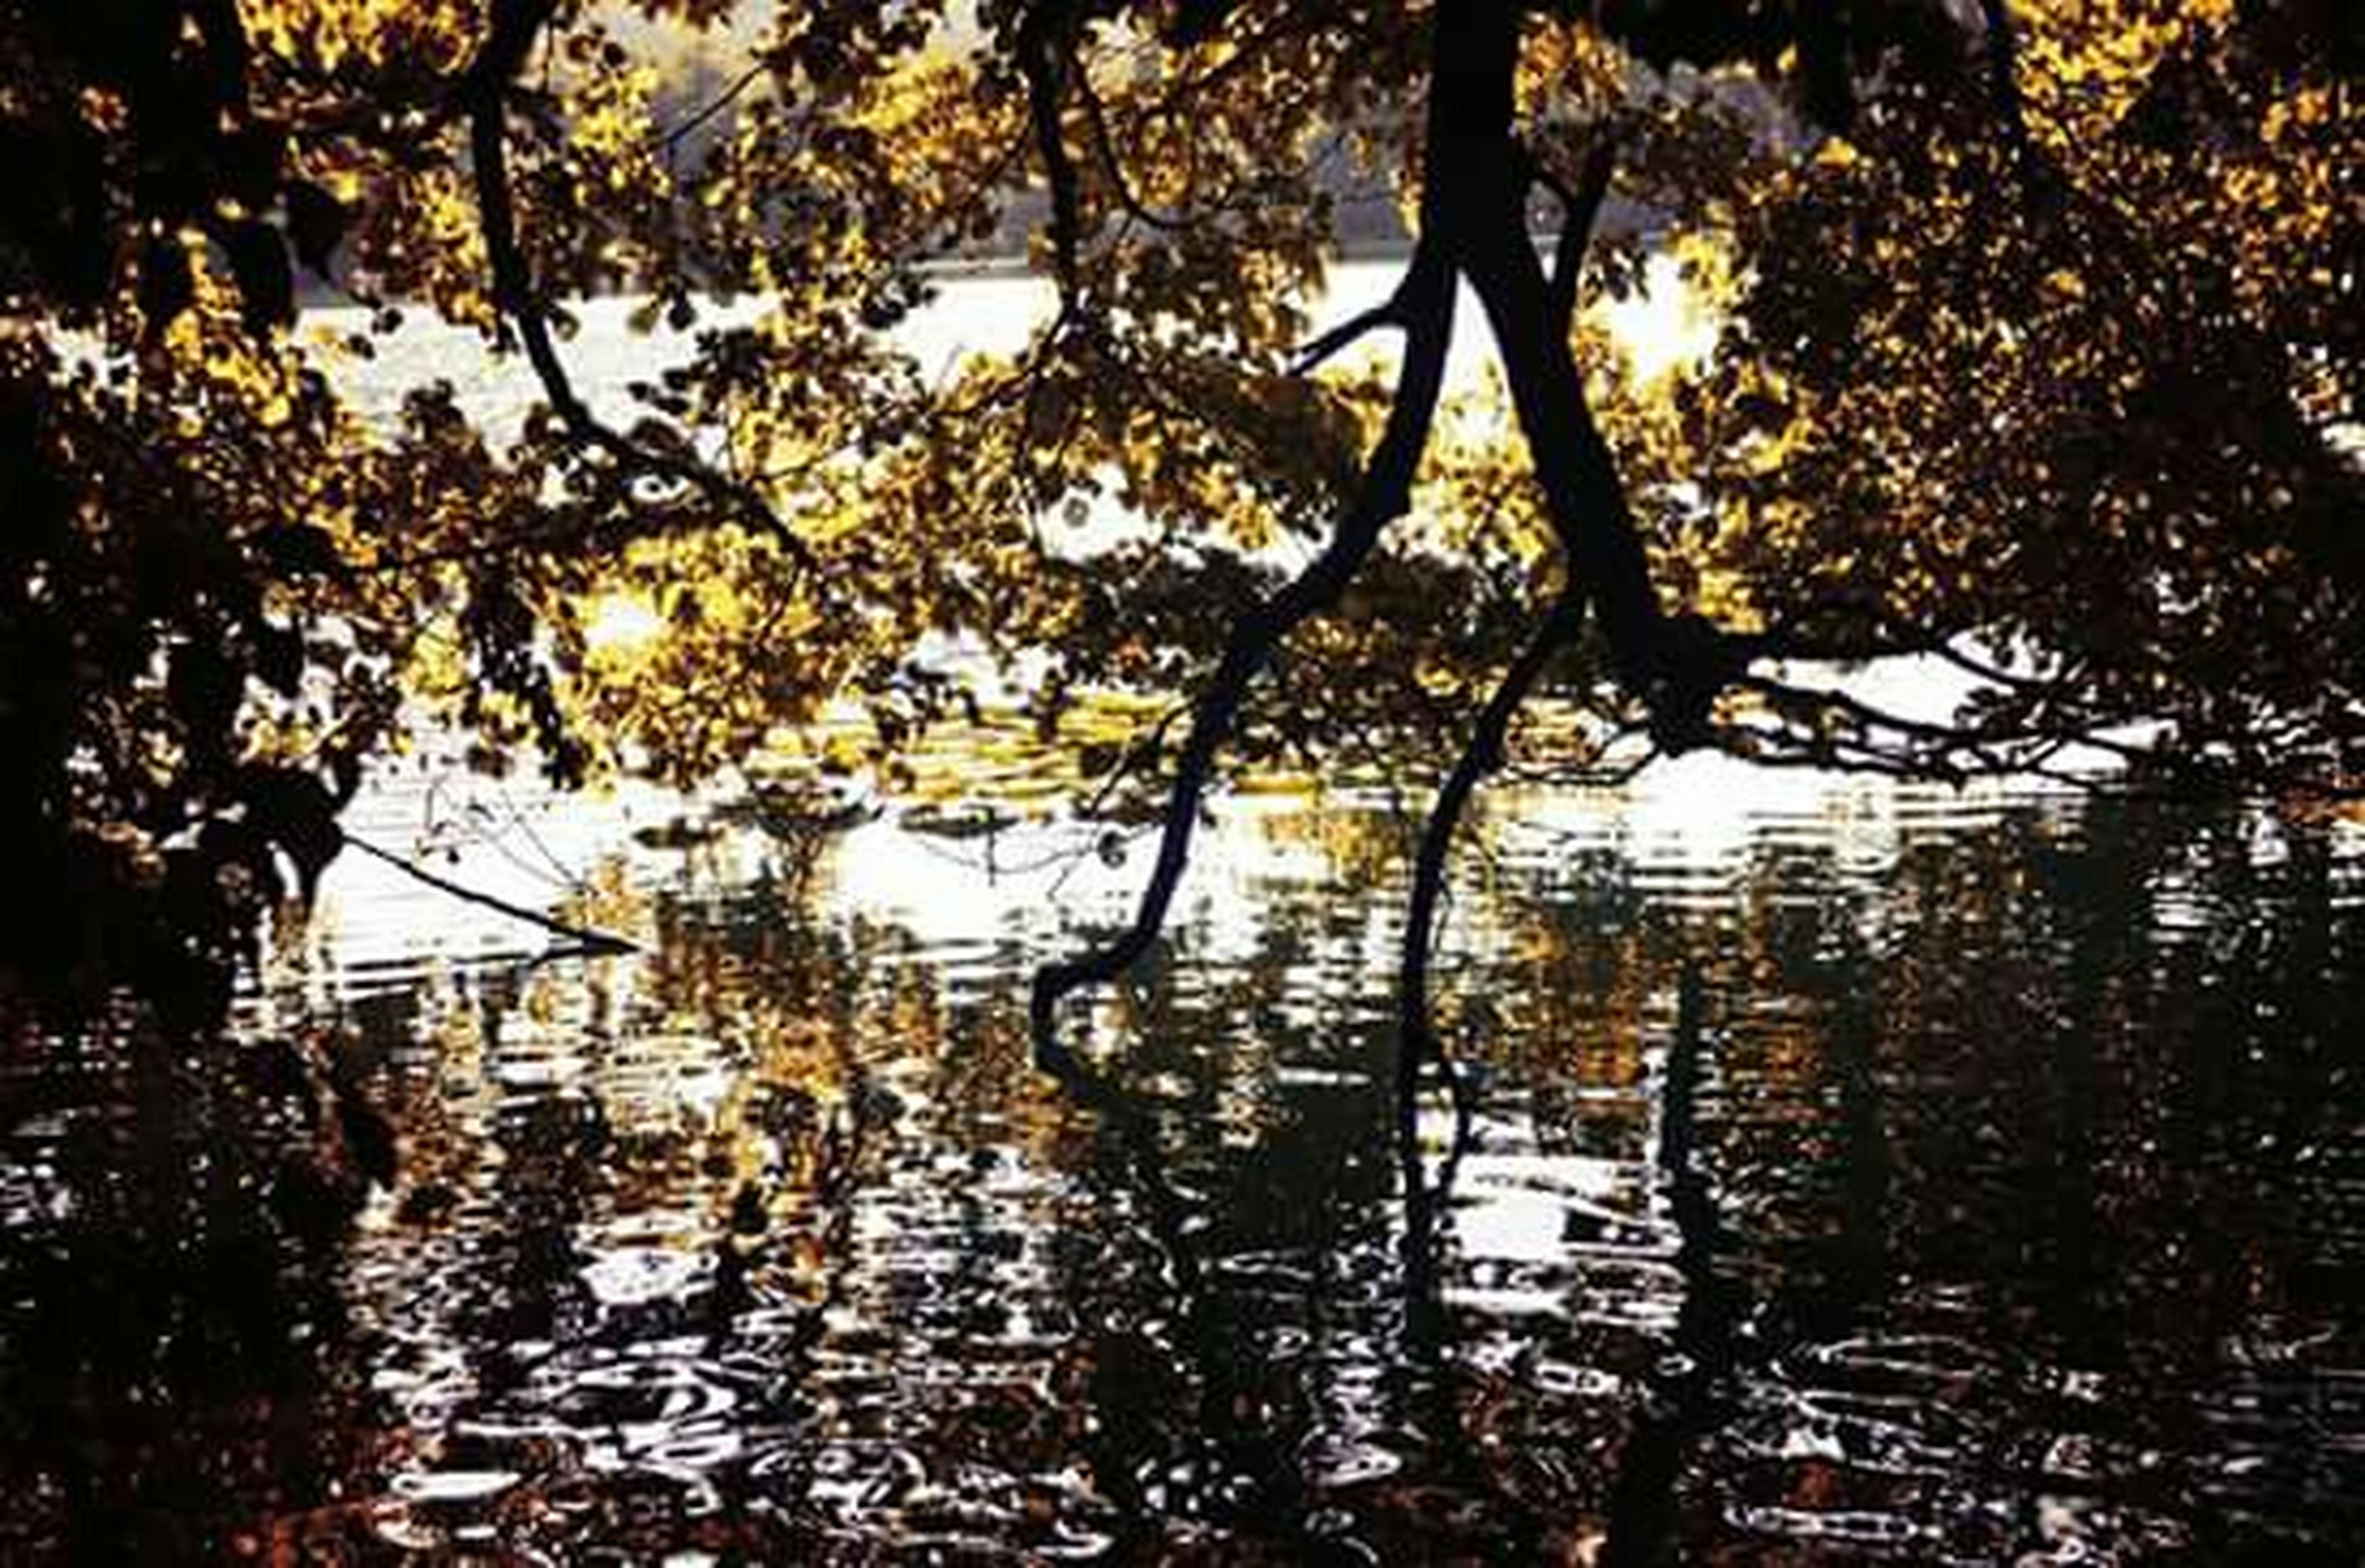 tree, branch, growth, leaf, water, nature, tranquility, autumn, beauty in nature, tree trunk, season, sunlight, reflection, outdoors, tranquil scene, no people, scenics, day, change, lake